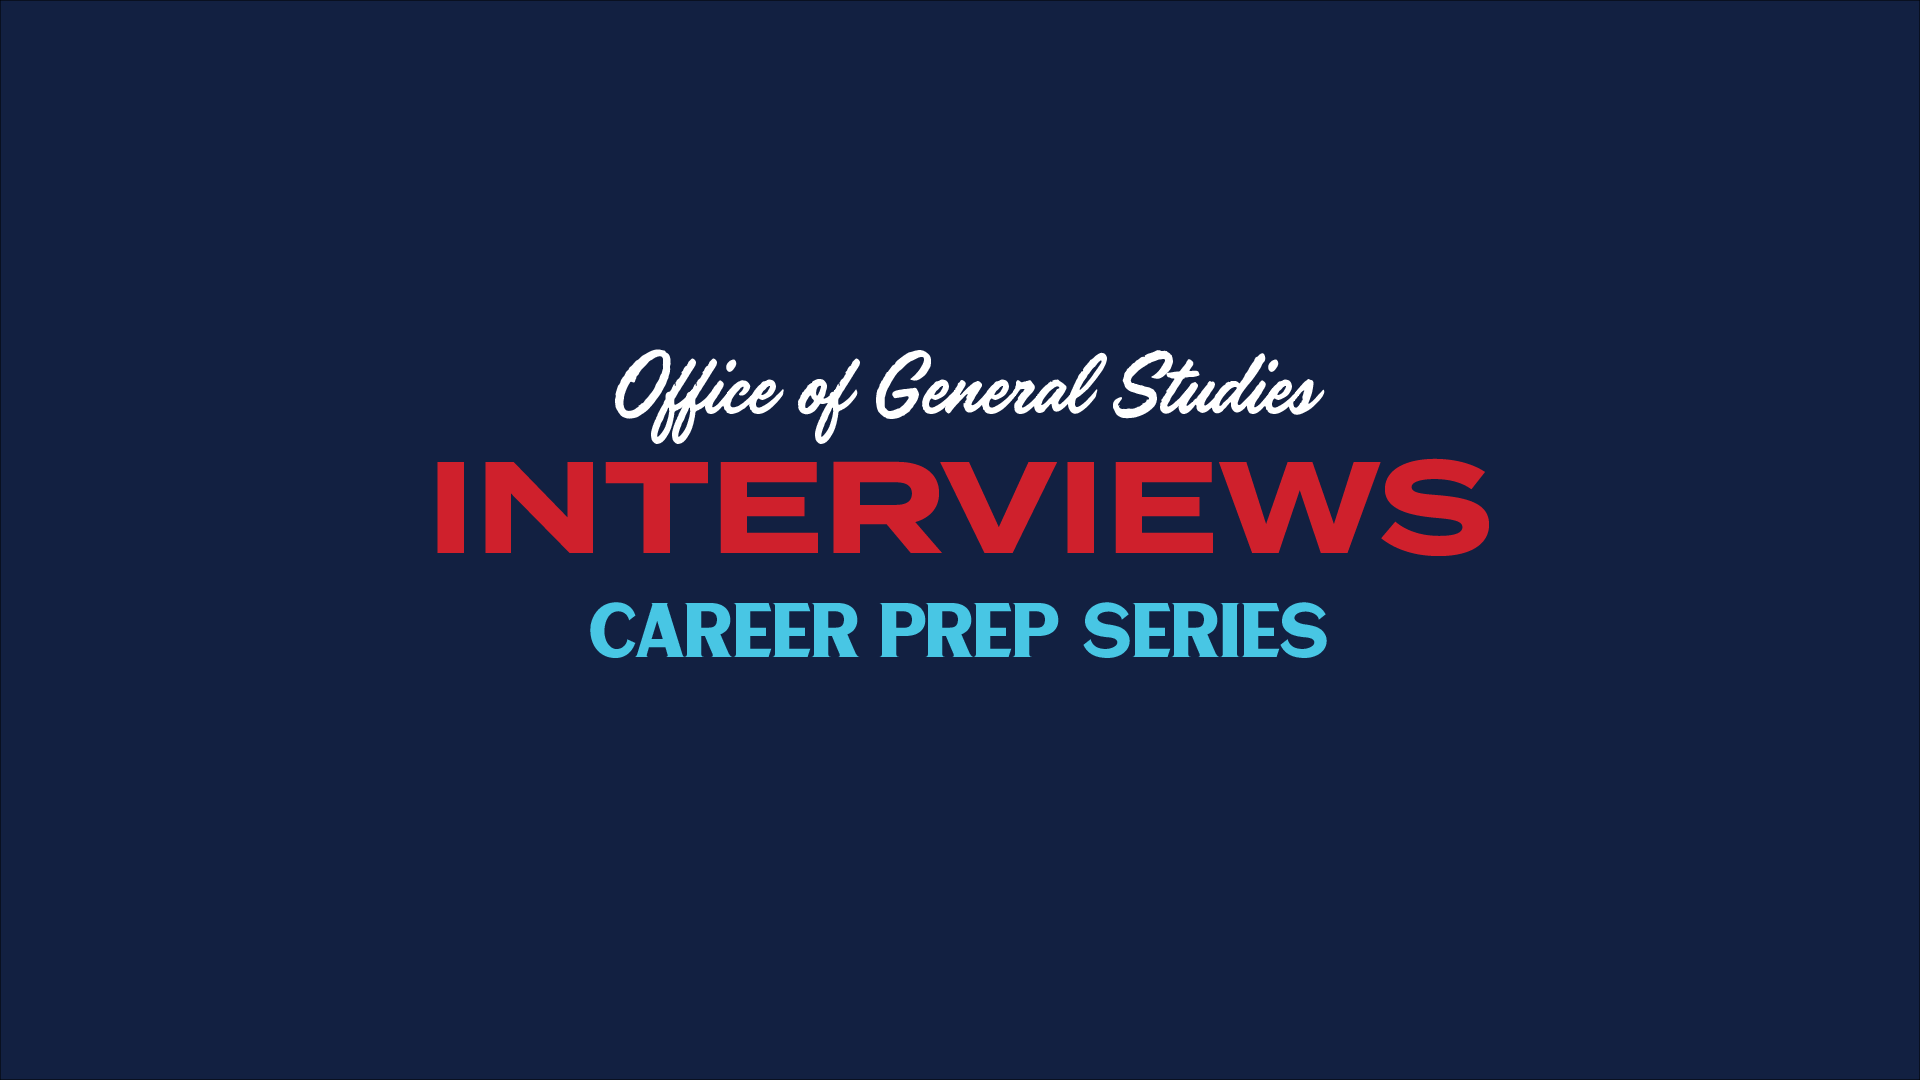 graphic for interviews career prep video